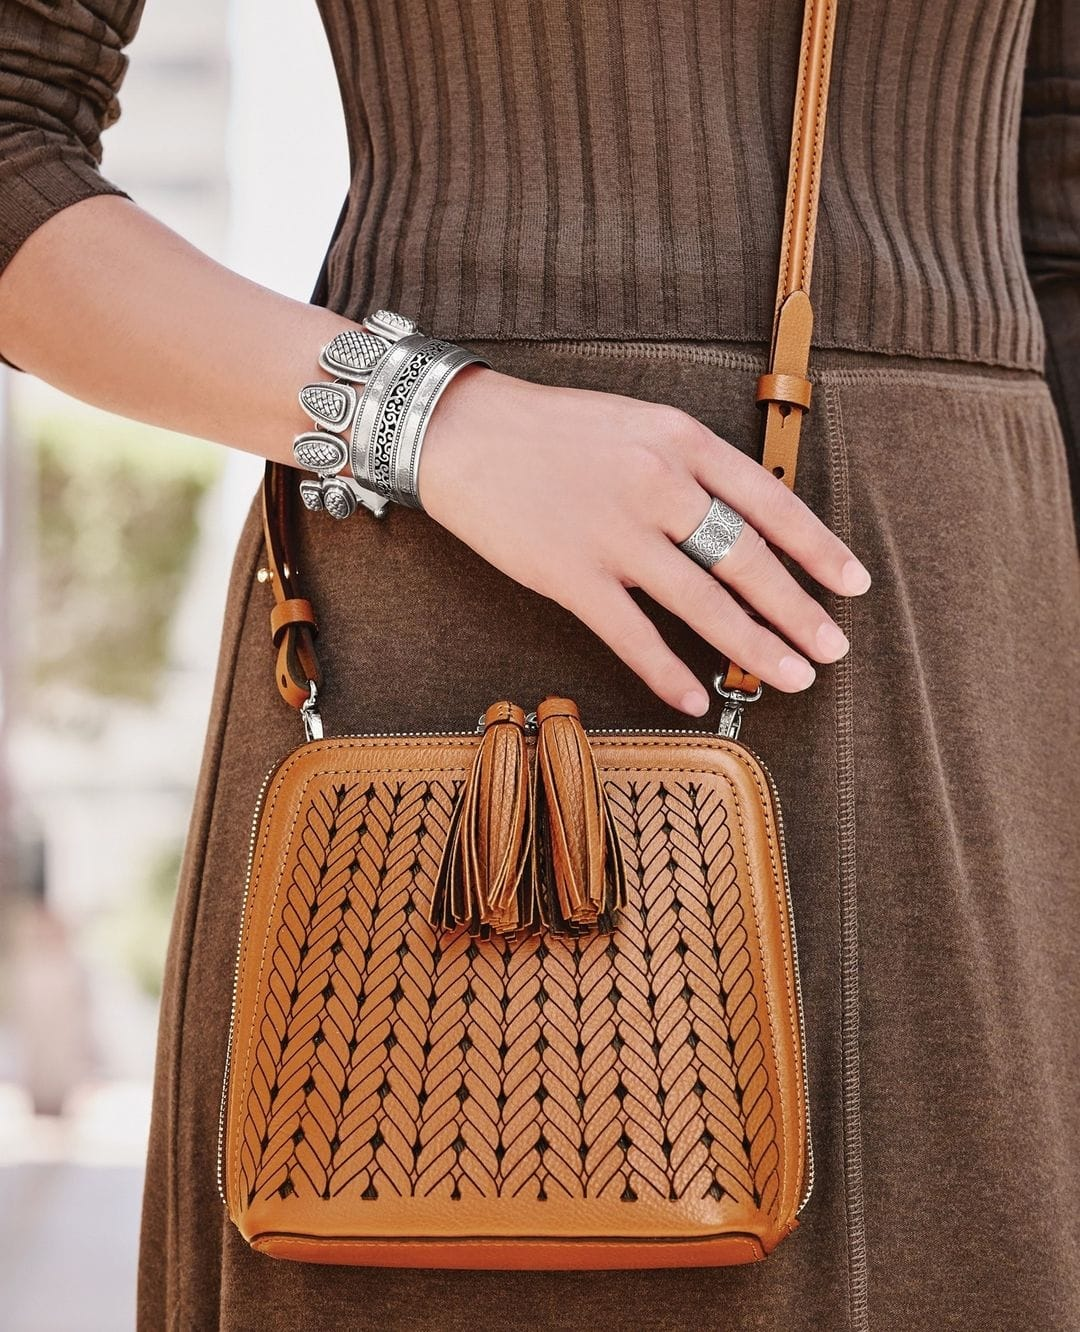 Brighton's hand-braided Vega mini crossbody bag is inspired by the clean lines and architecture of Santorini, Greece